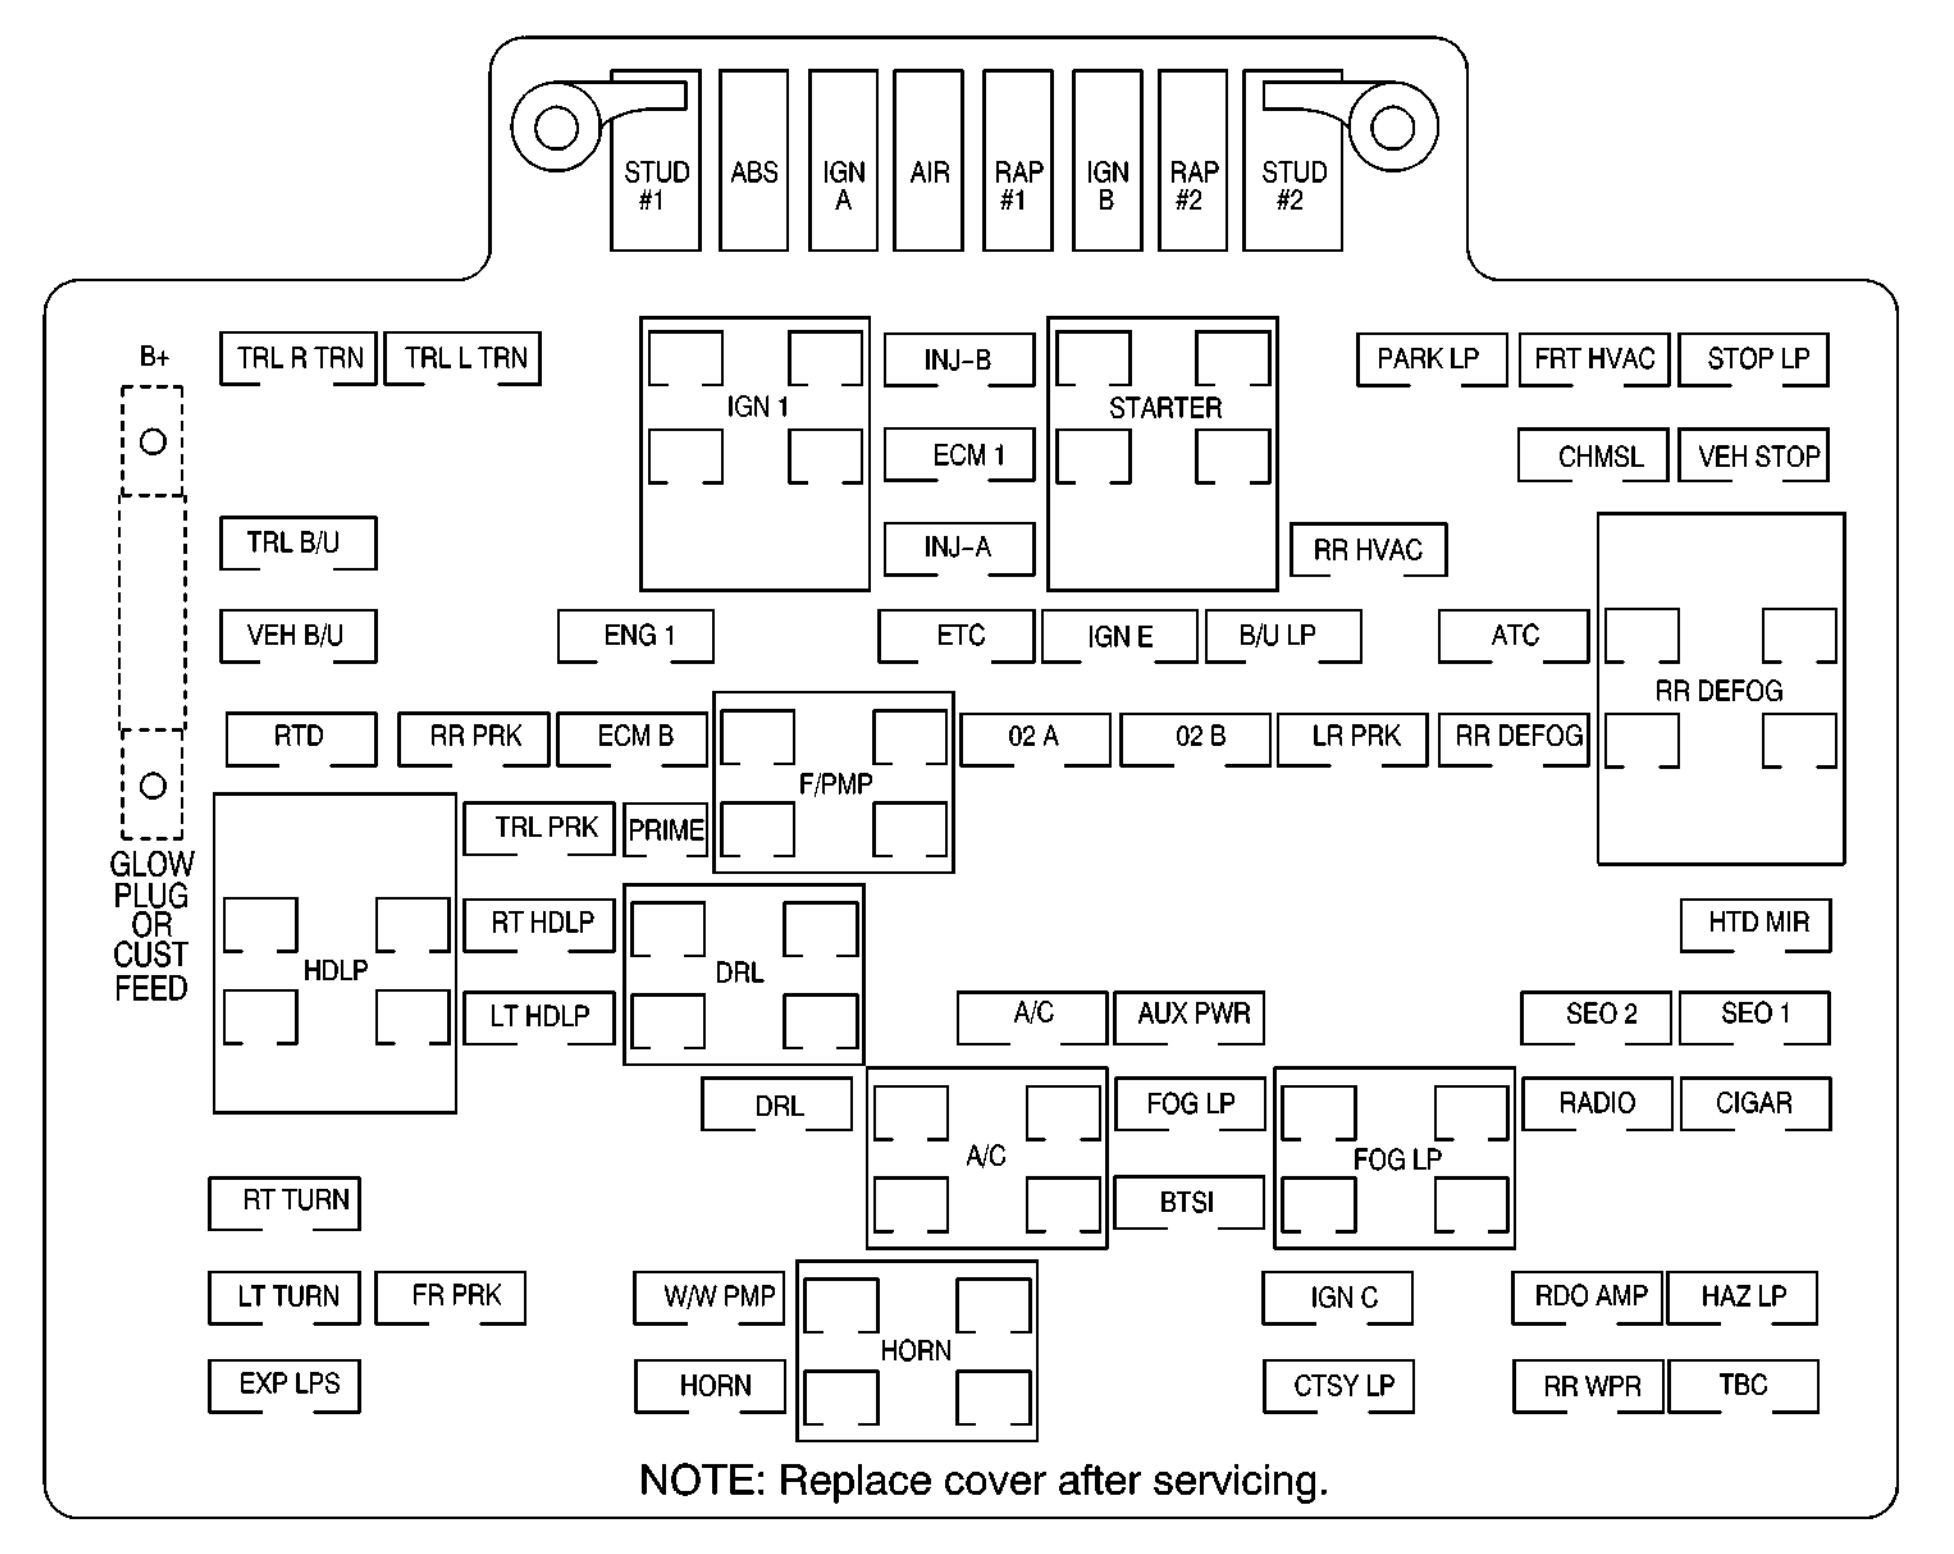 2002 chevy tahoe fuse box diagram online schematic diagram u2022 rh epicstore co 2004 chevy aveo fuse box diagram 2004 chevy express 3500 fuse box diagram